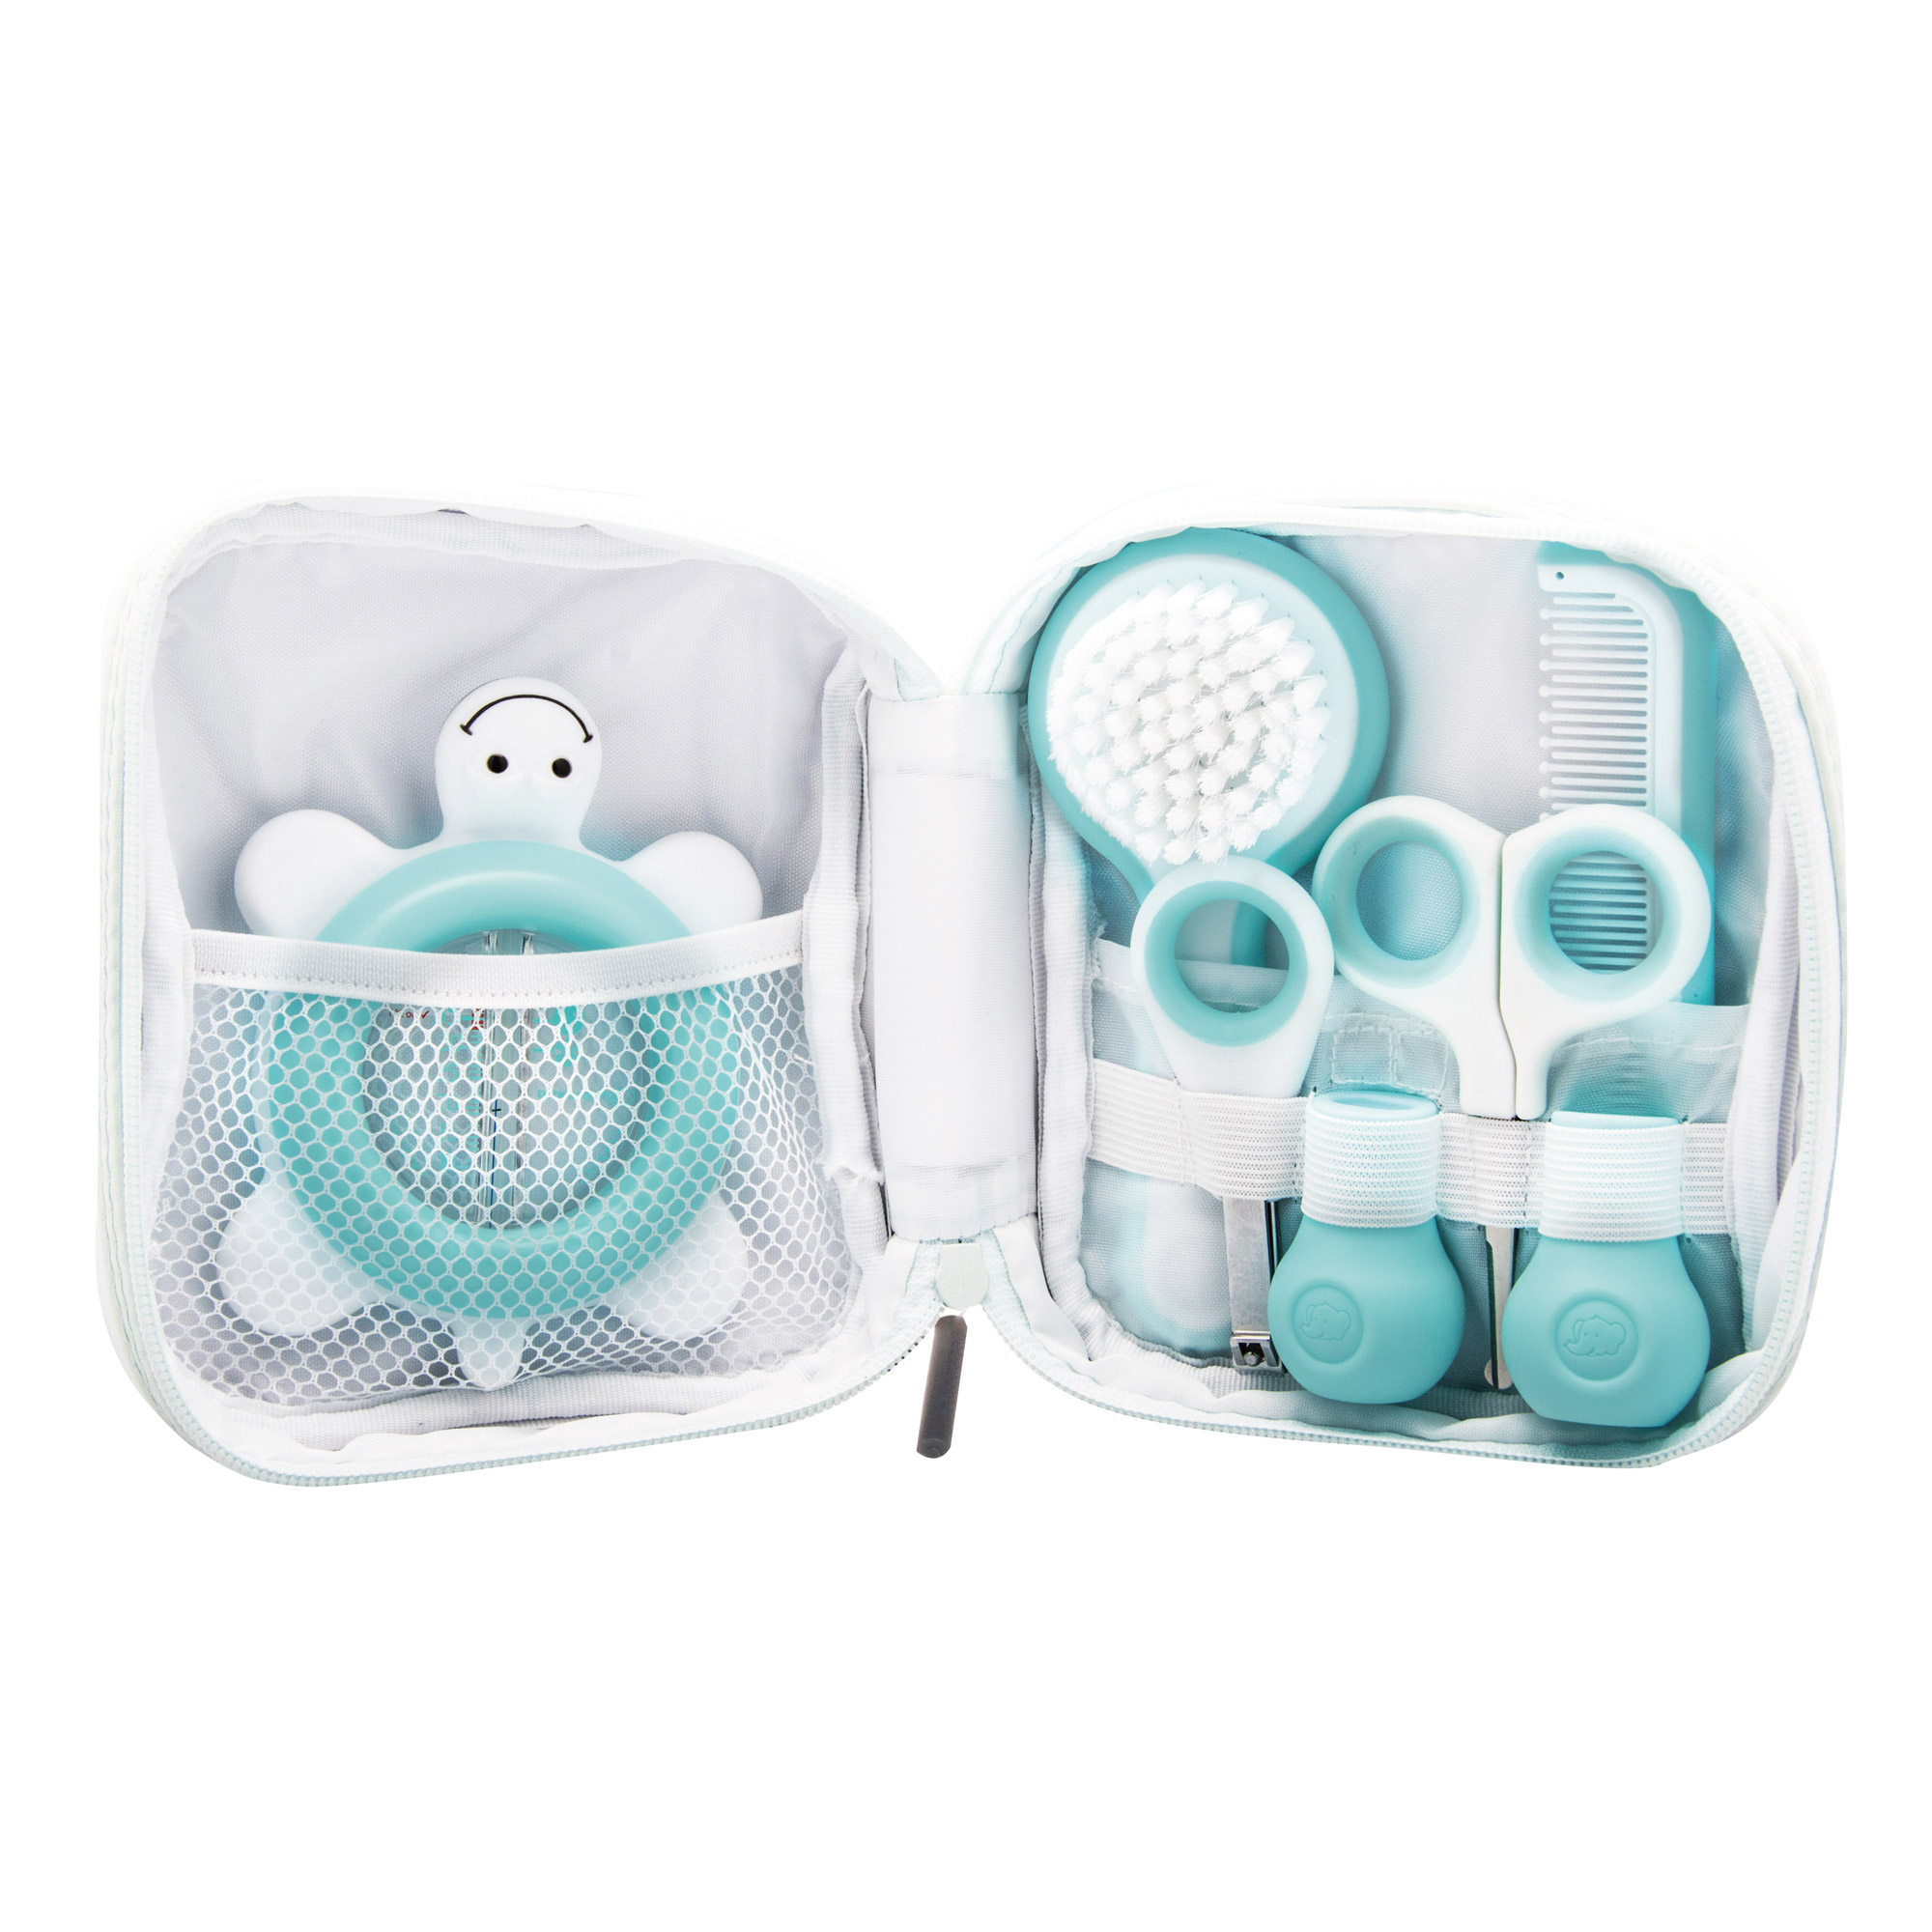 set de toilette bébé confort